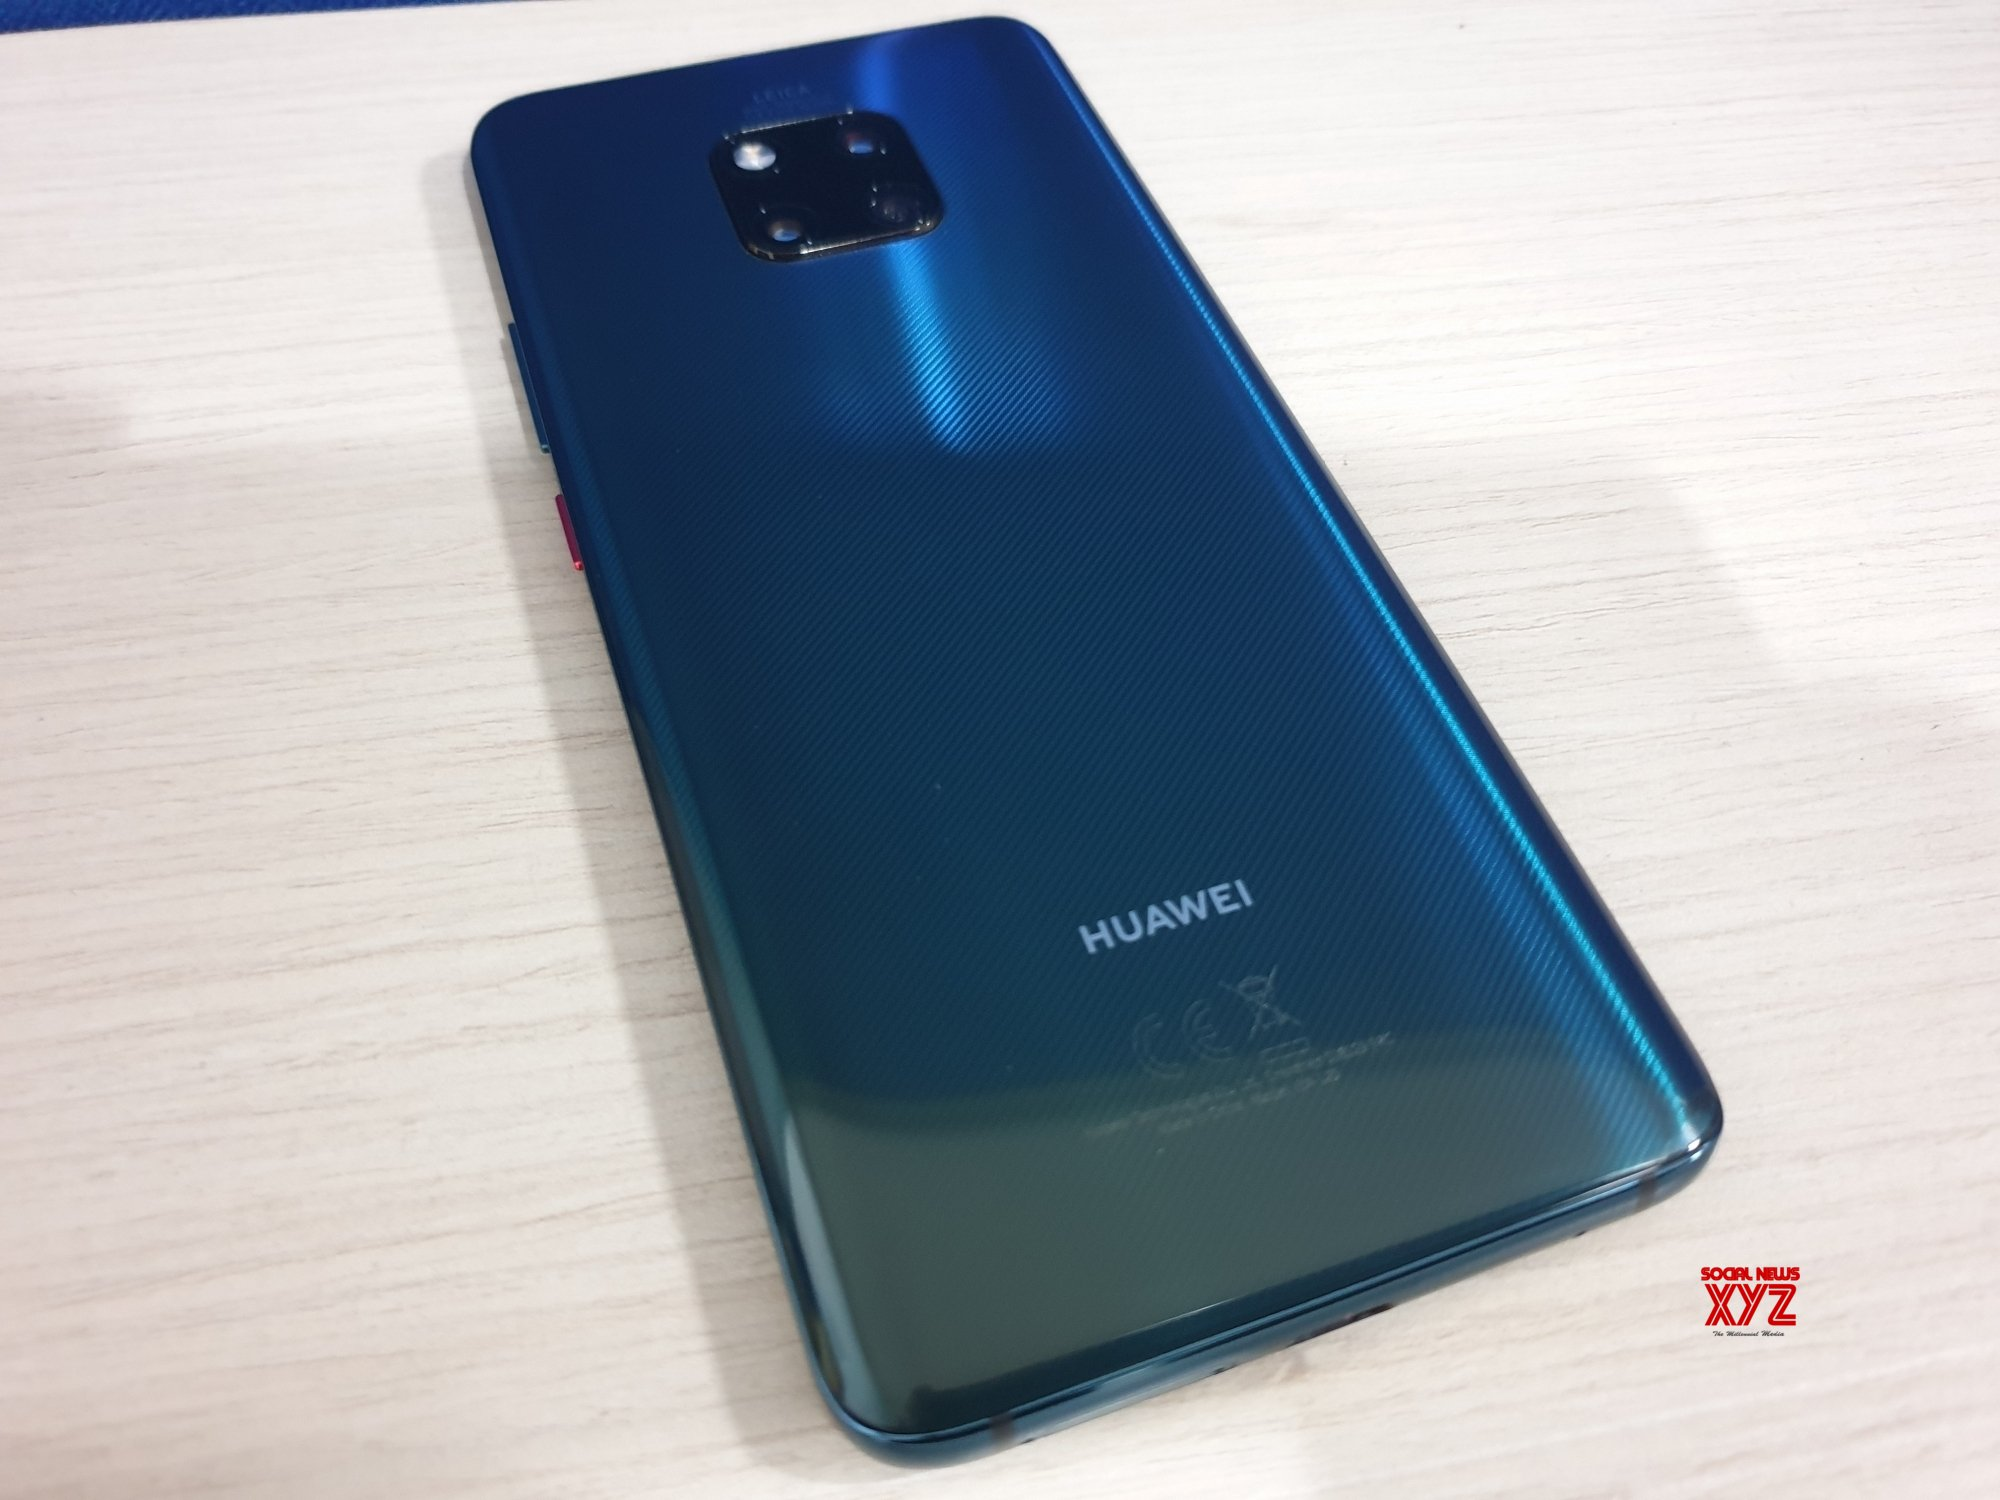 Huawei Mate 20 X 5G announced, coming to the United Kingdom in June